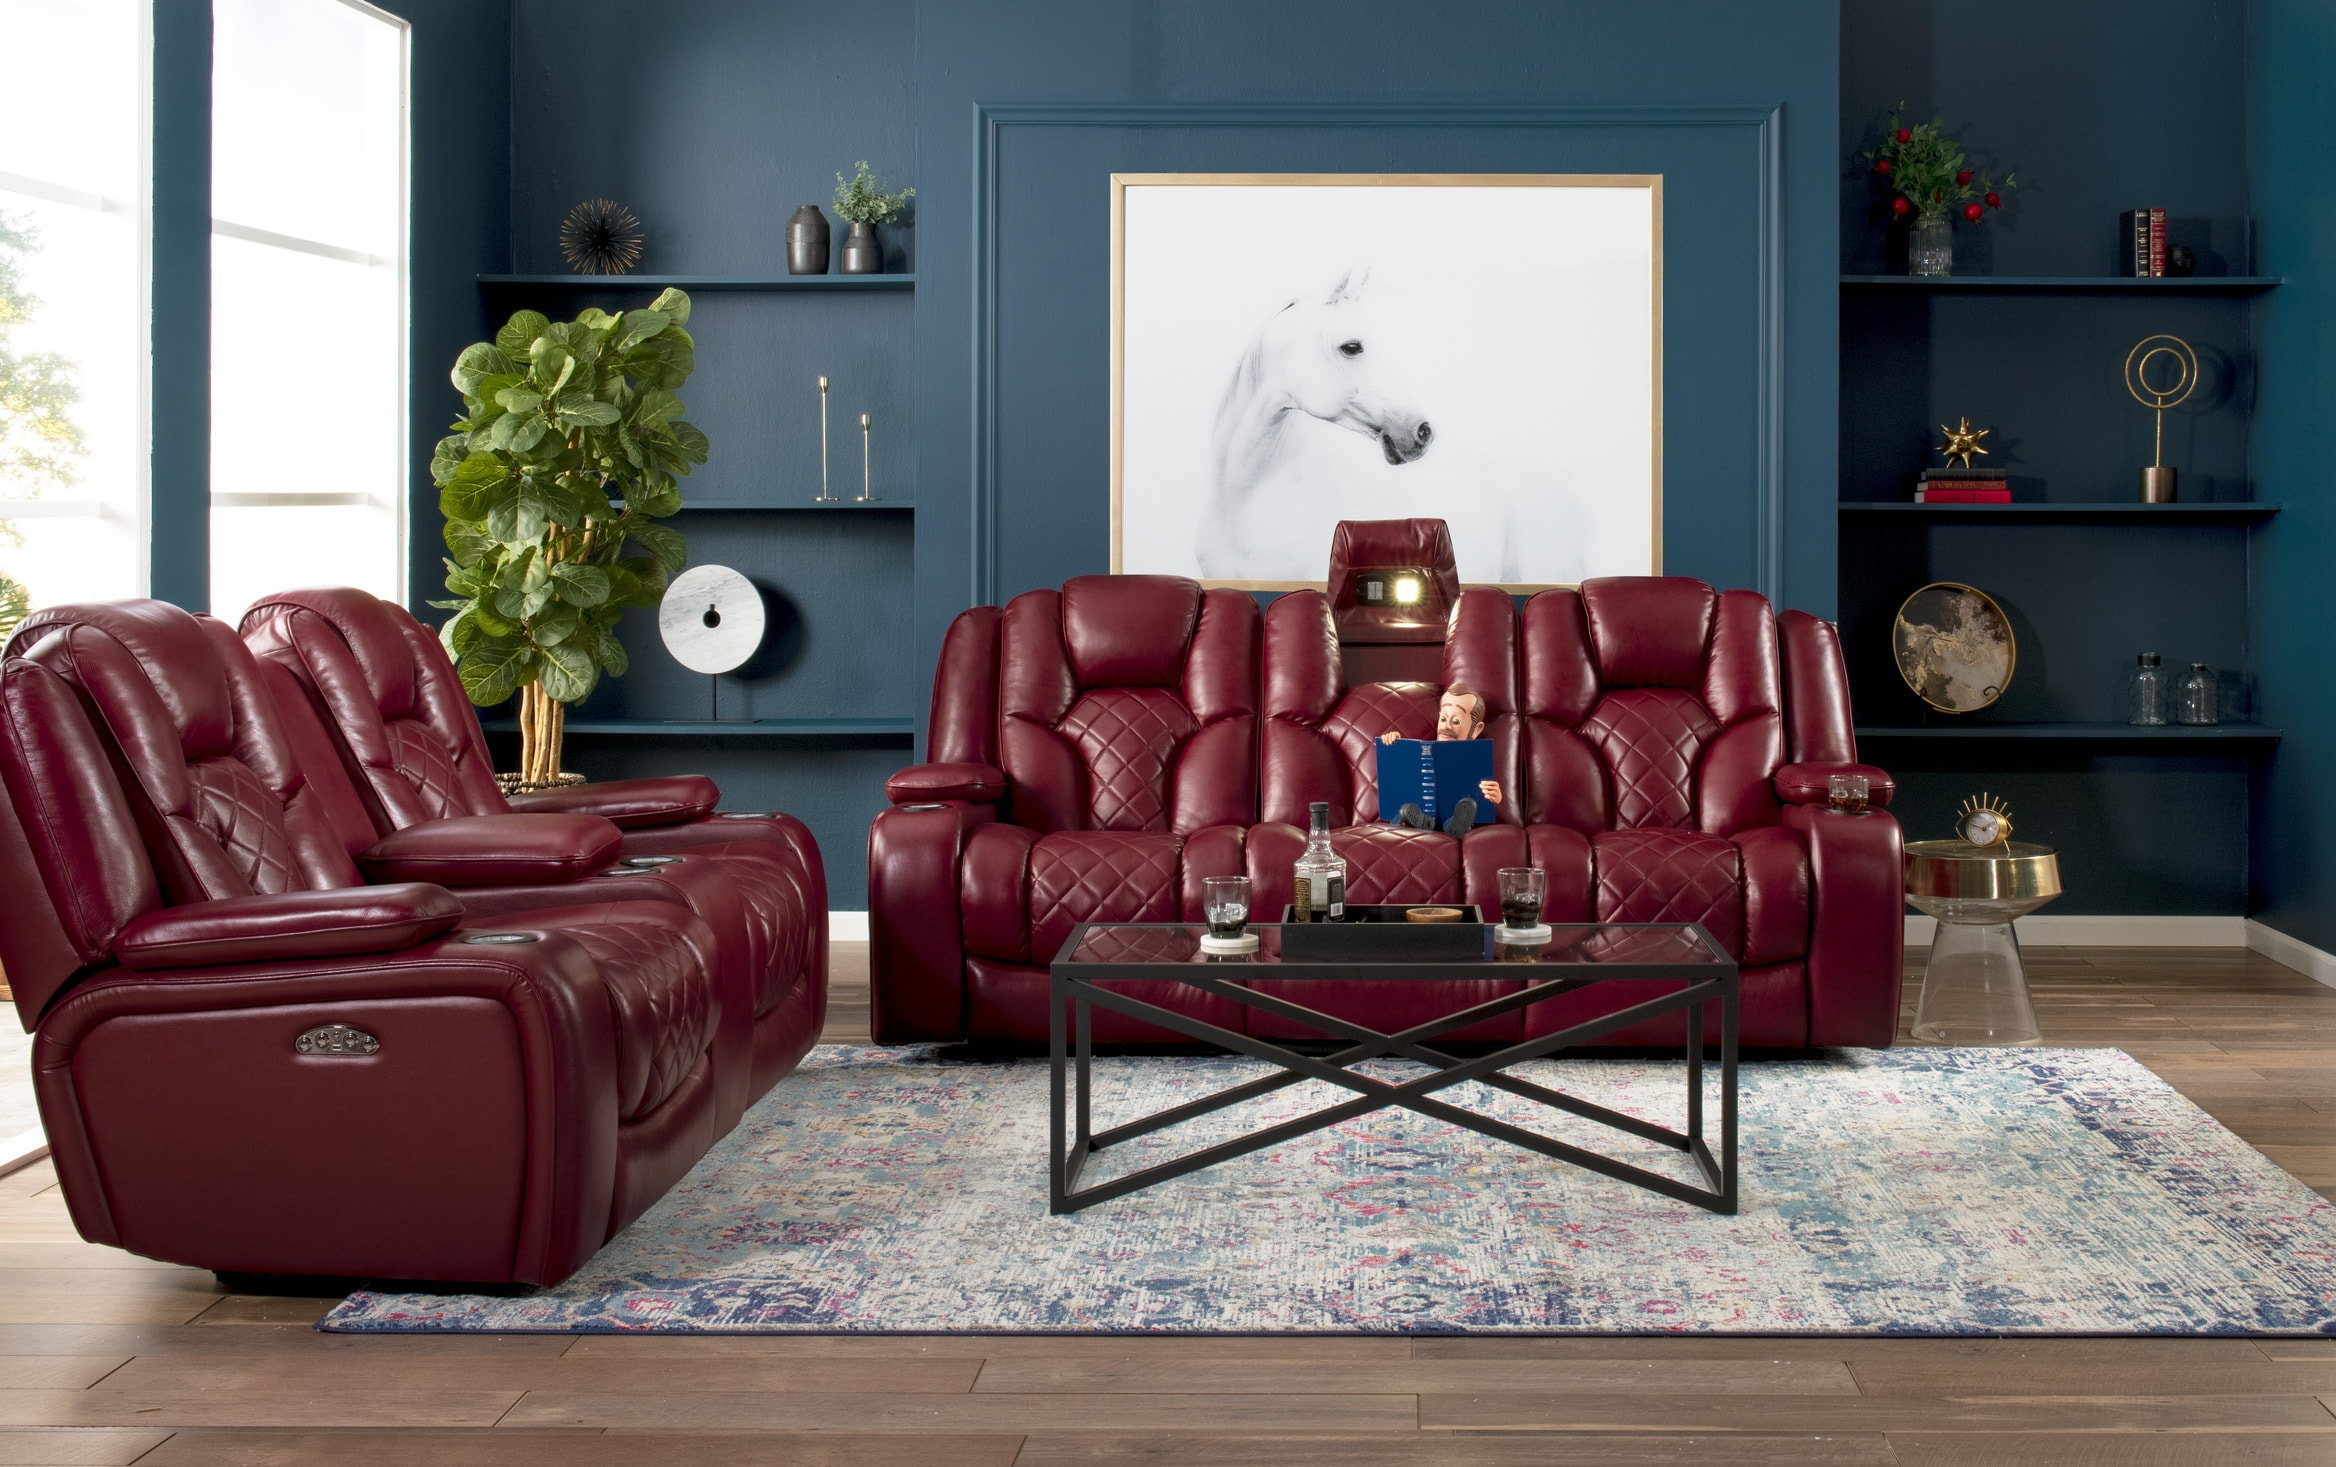 Most Recently Released Panther Fire Leather Dual Power Reclining Sofa – Latest Within Panther Fire Leather Dual Power Reclining Sofas (View 3 of 15)